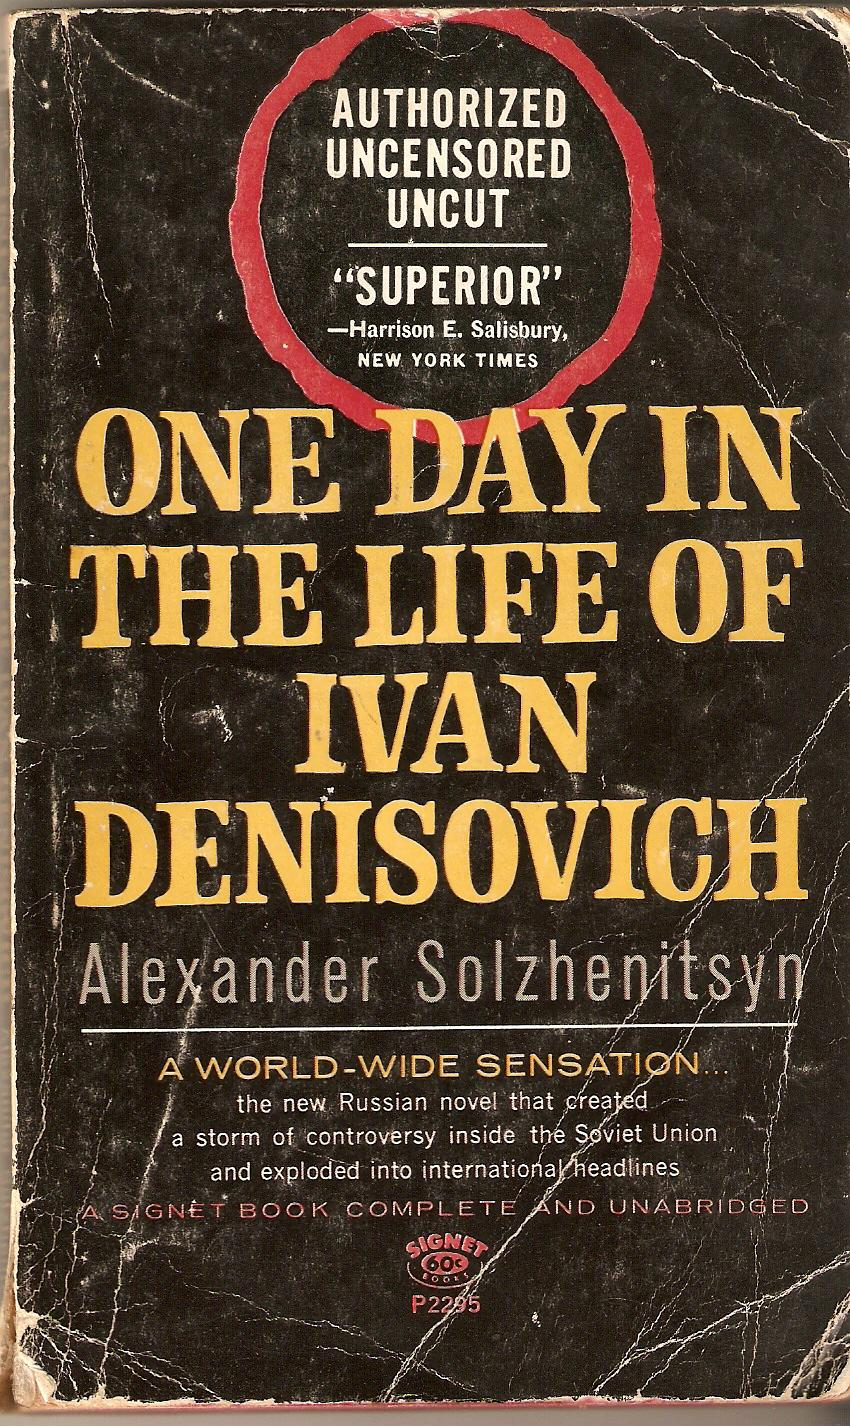 ivan denisovich shukhov as a tragic hero in aleksandr solzhenitsyns one day in the life of ivan deni Writing analytical essay, argumentative essay, cause and effect essay, compare and contrast essay, persuasive essay.